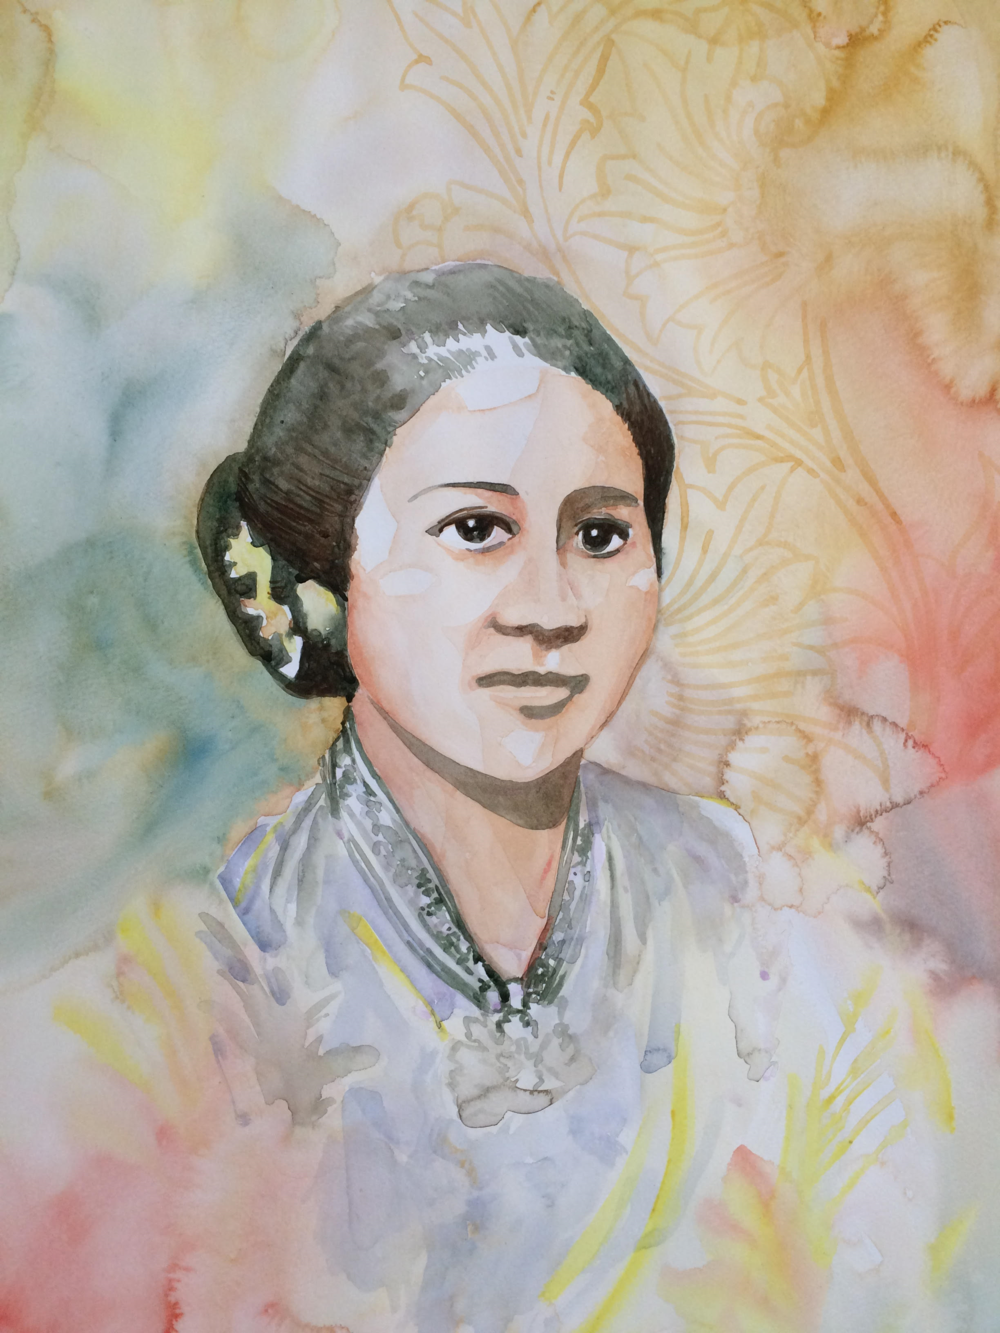 Tri Setyani Remembering Kartini, 2016 Watercolour on paper 40 cm x 30 cm